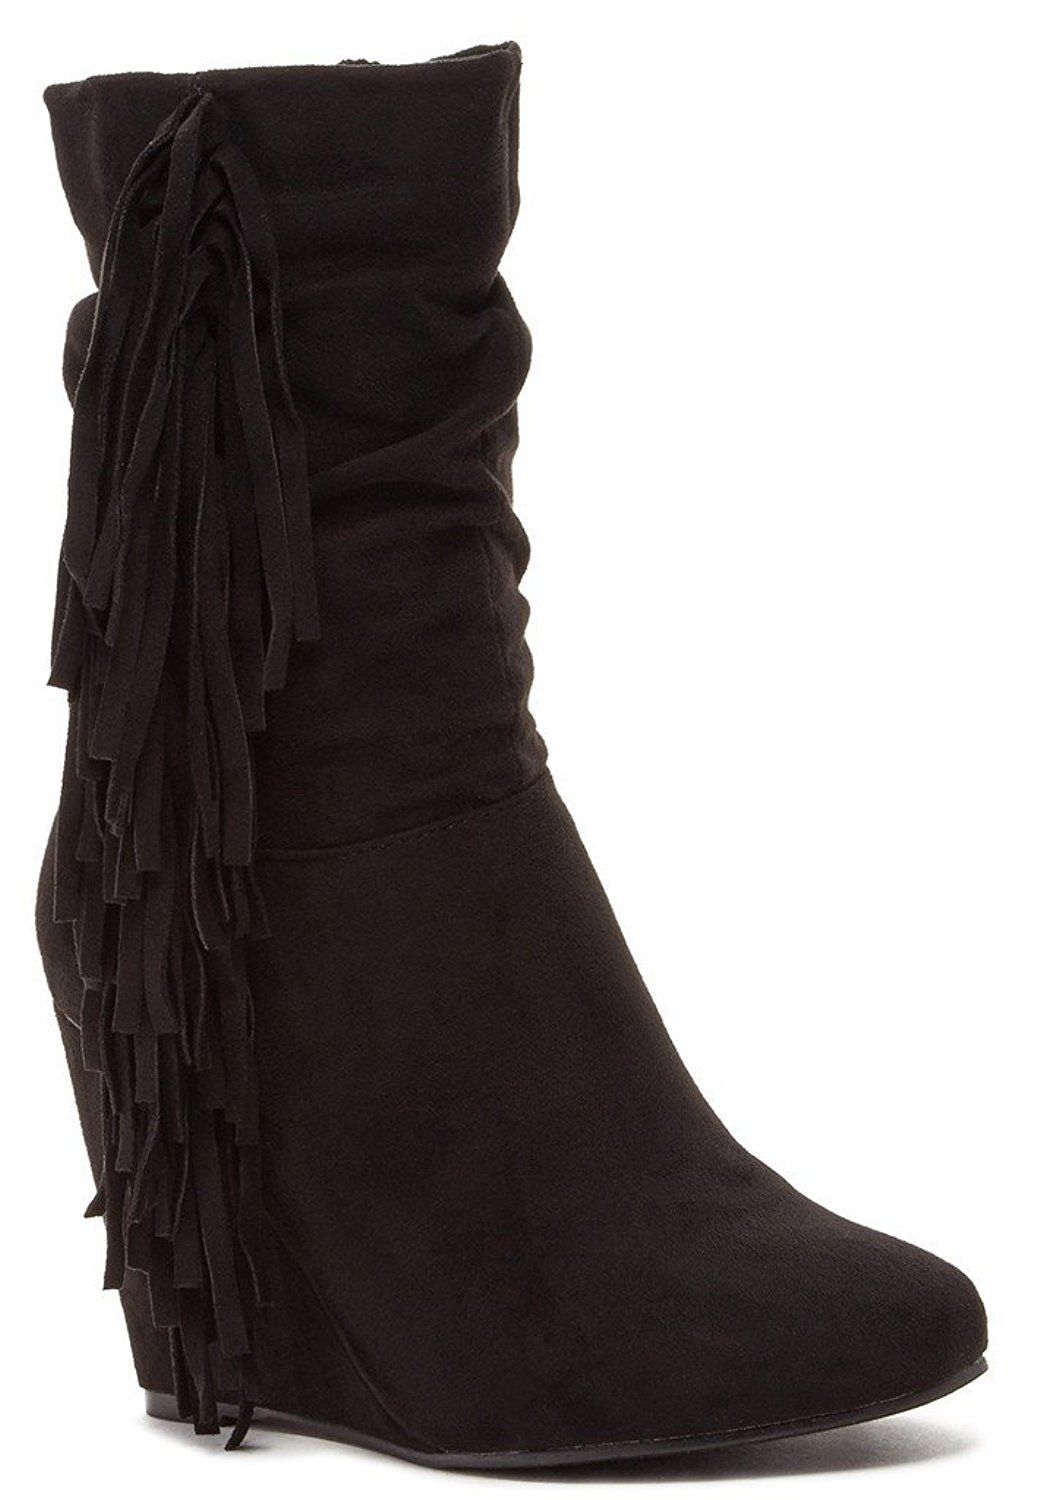 Noalanda Womens Fashion Fringed Wedge Boots